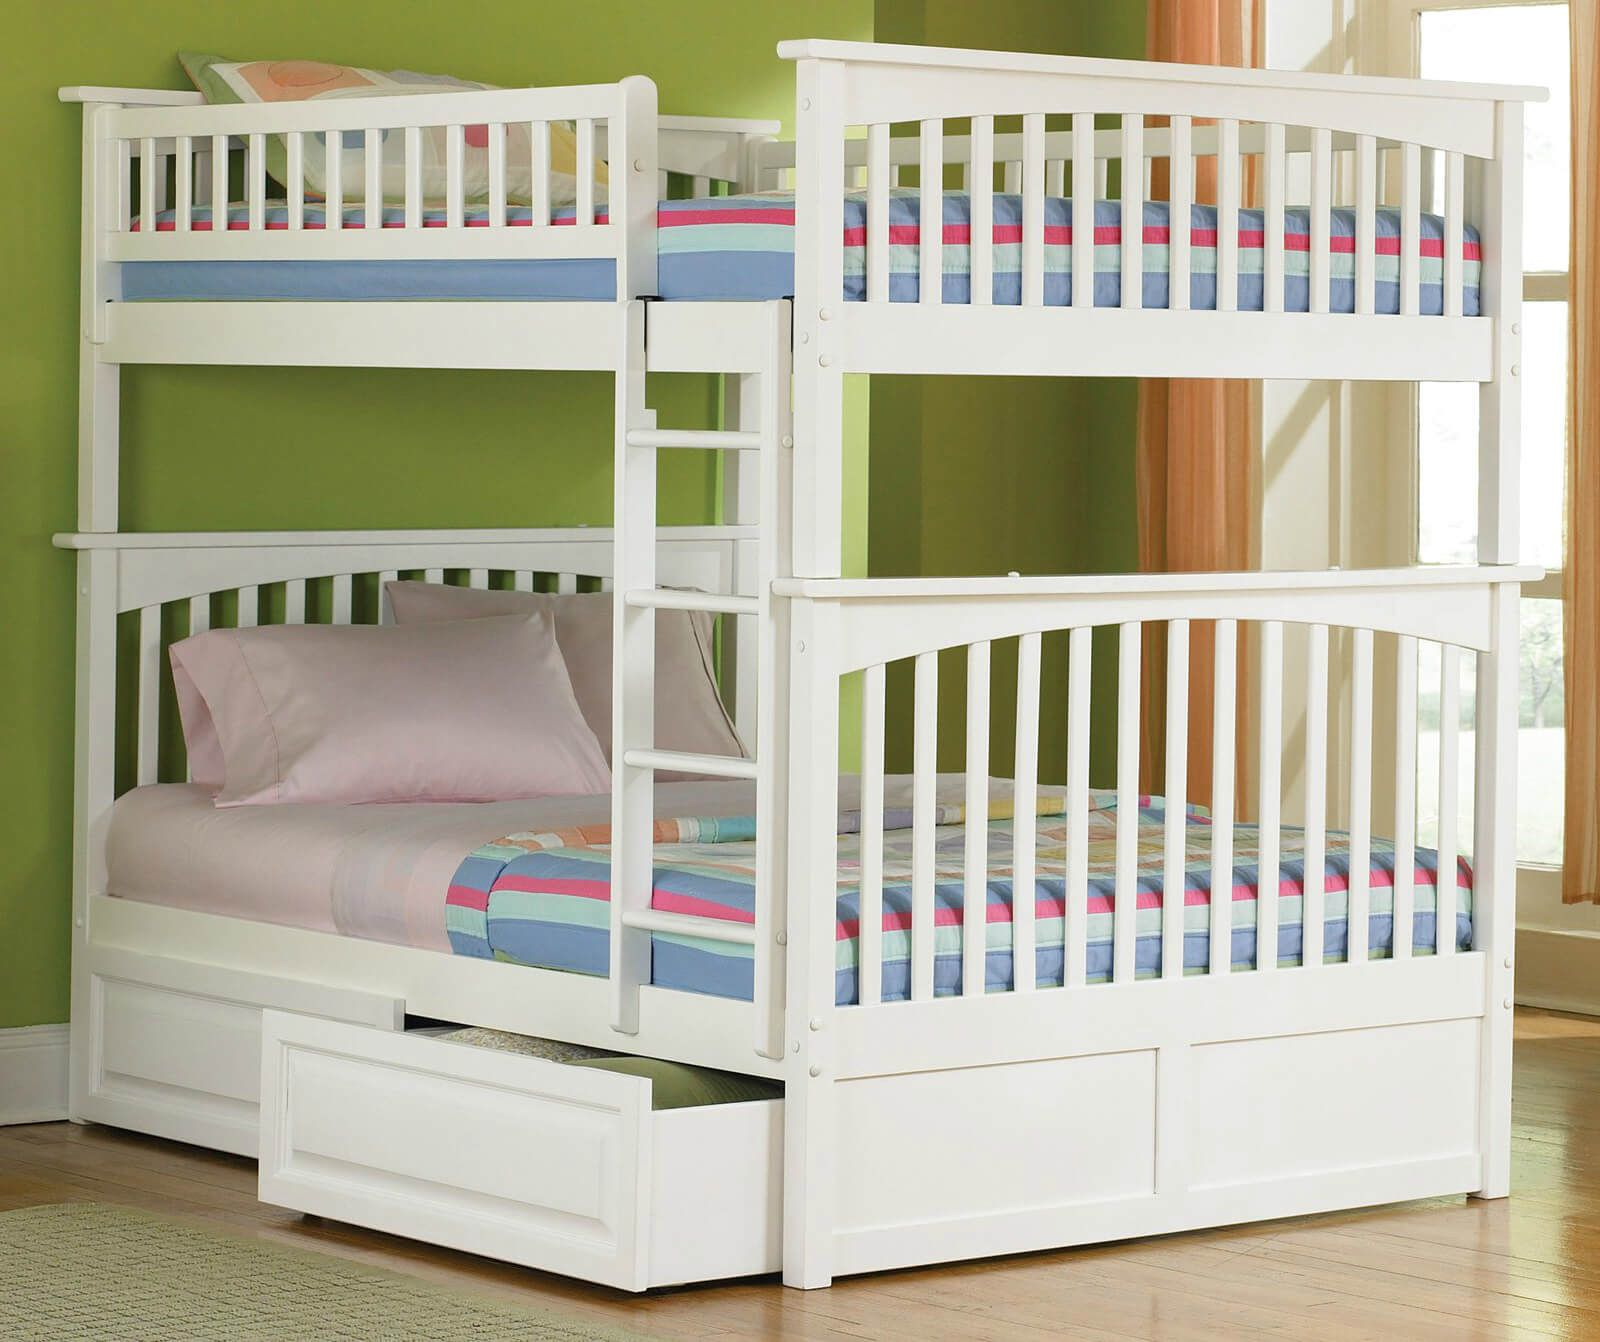 Double Loft Bed For Kids 201 Fun Kids Bedroom Design Ideas For 2018 Munchkins